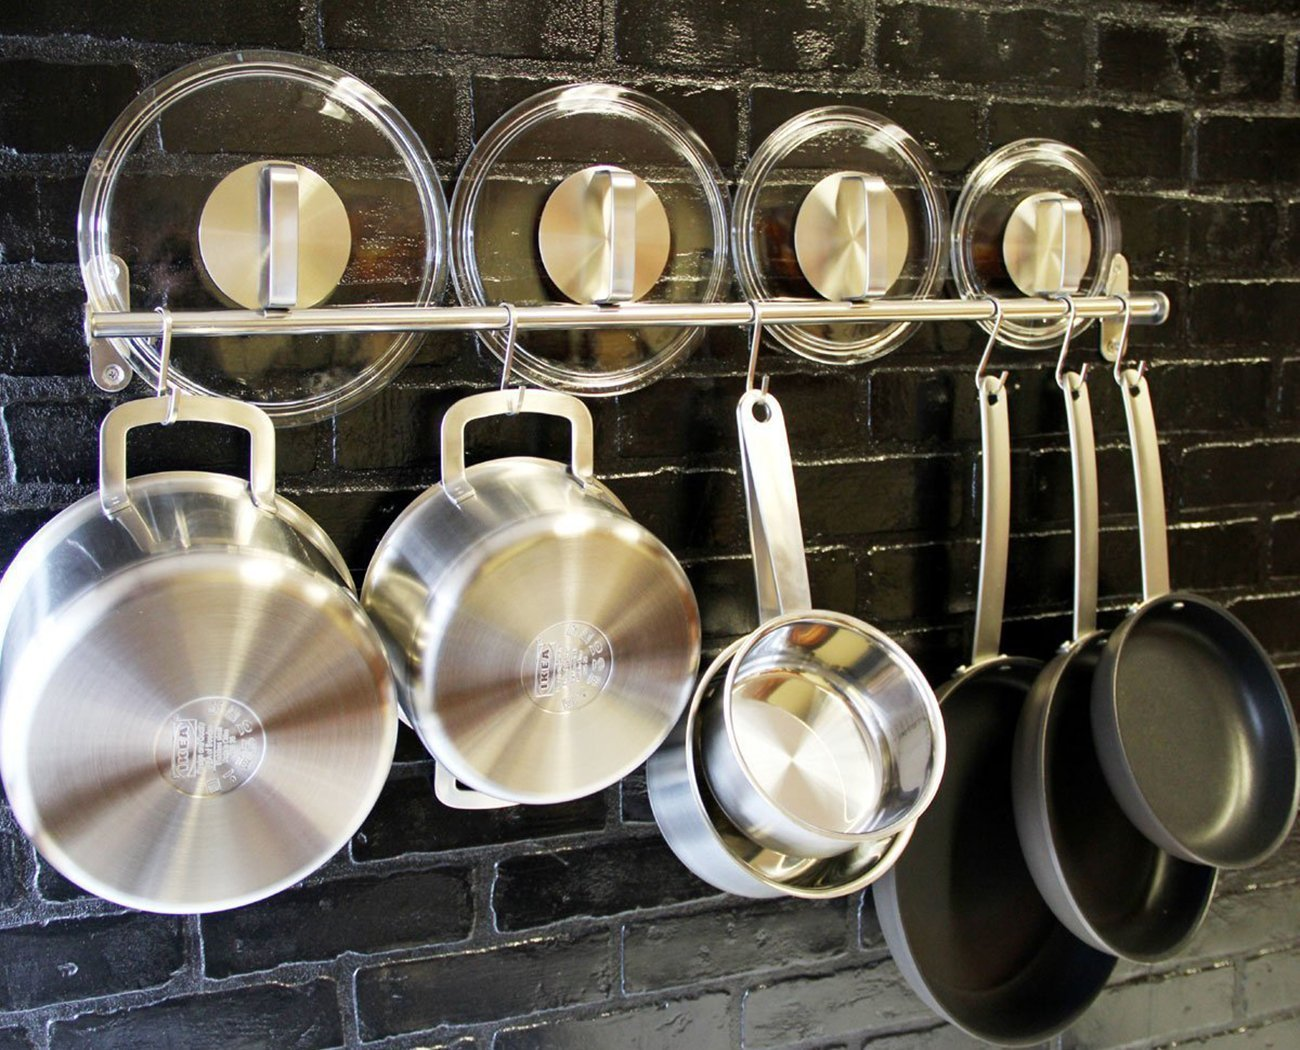 Wall Mounted Pan Pot Rack 35'', Willor Kitchen Pan Rack Utensil Hanger 35'' Stainless Steel Rail with 10 Hooks for Spatula Pan Saucepan Ladle